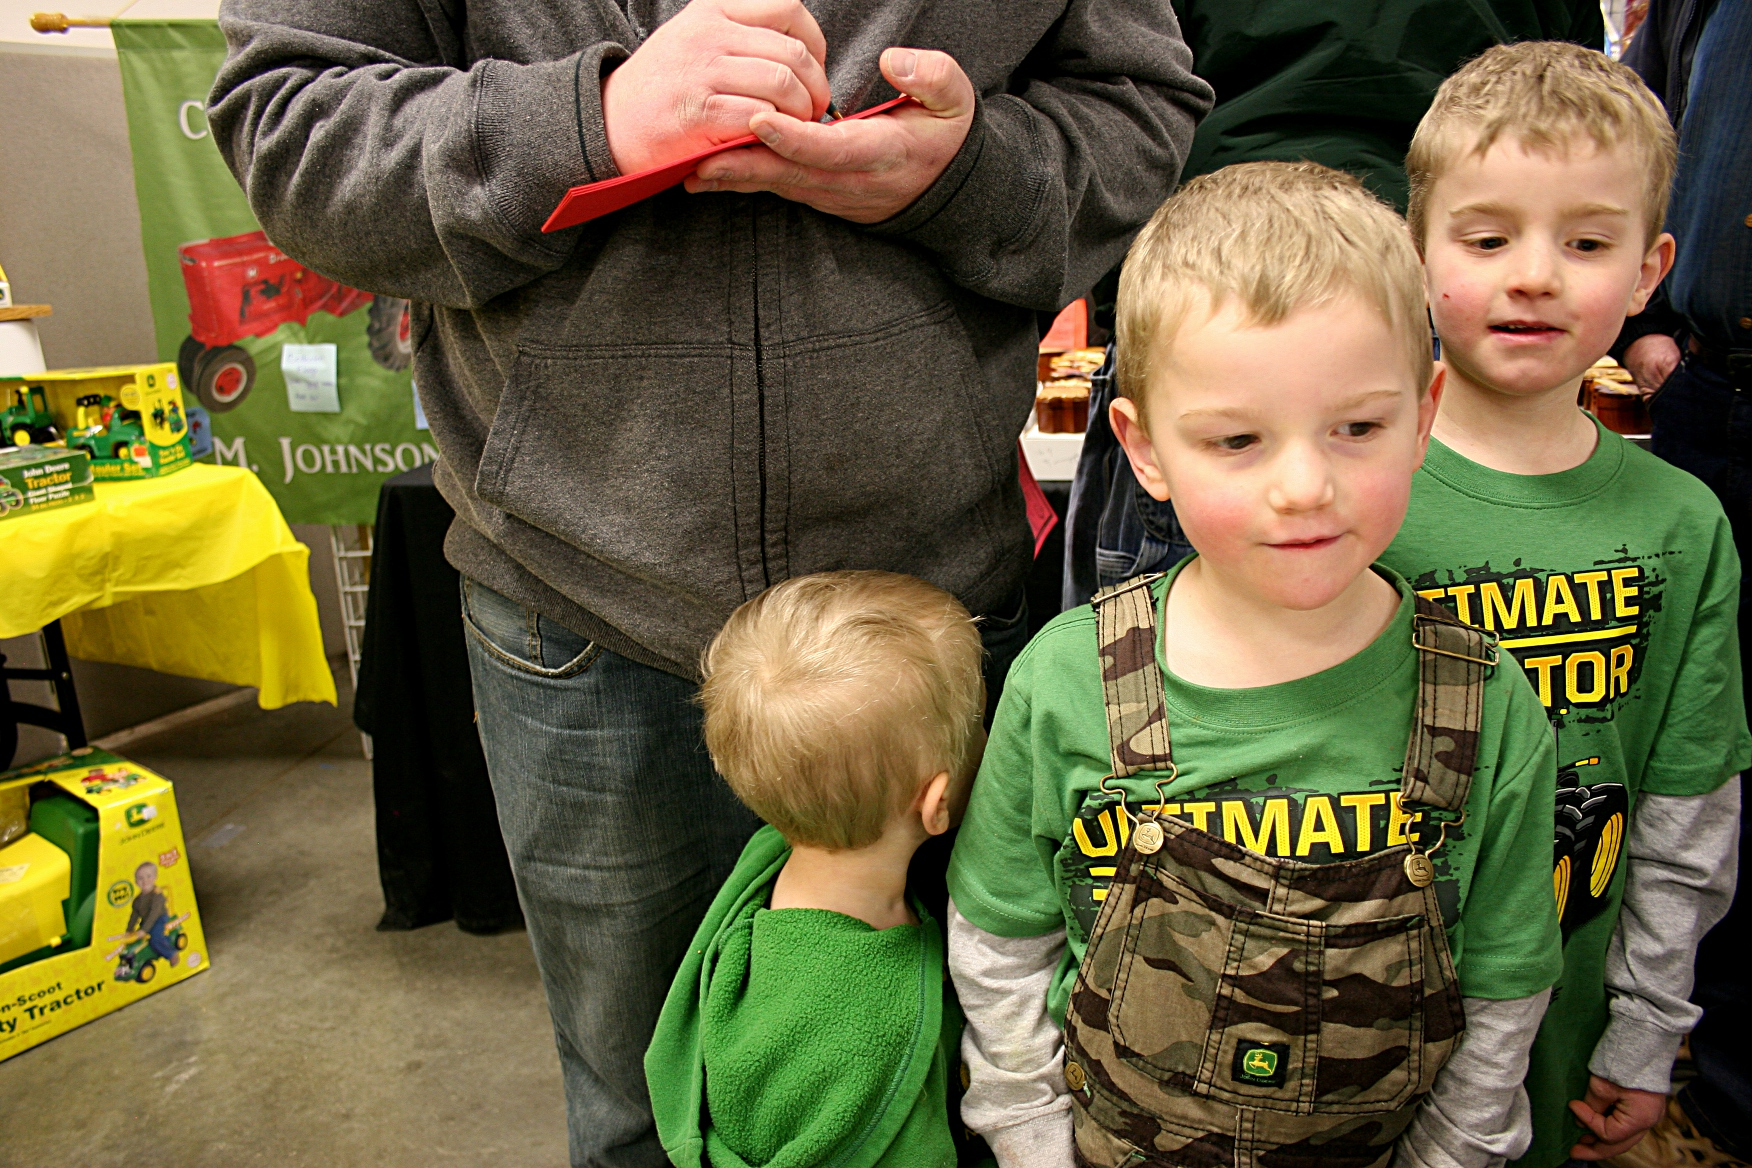 A trio of brothers dressed in John Deere attired waited while their dad signed up for a Massey Harris tractor raffle from Rice County Steam & Gas Engines, Inc.